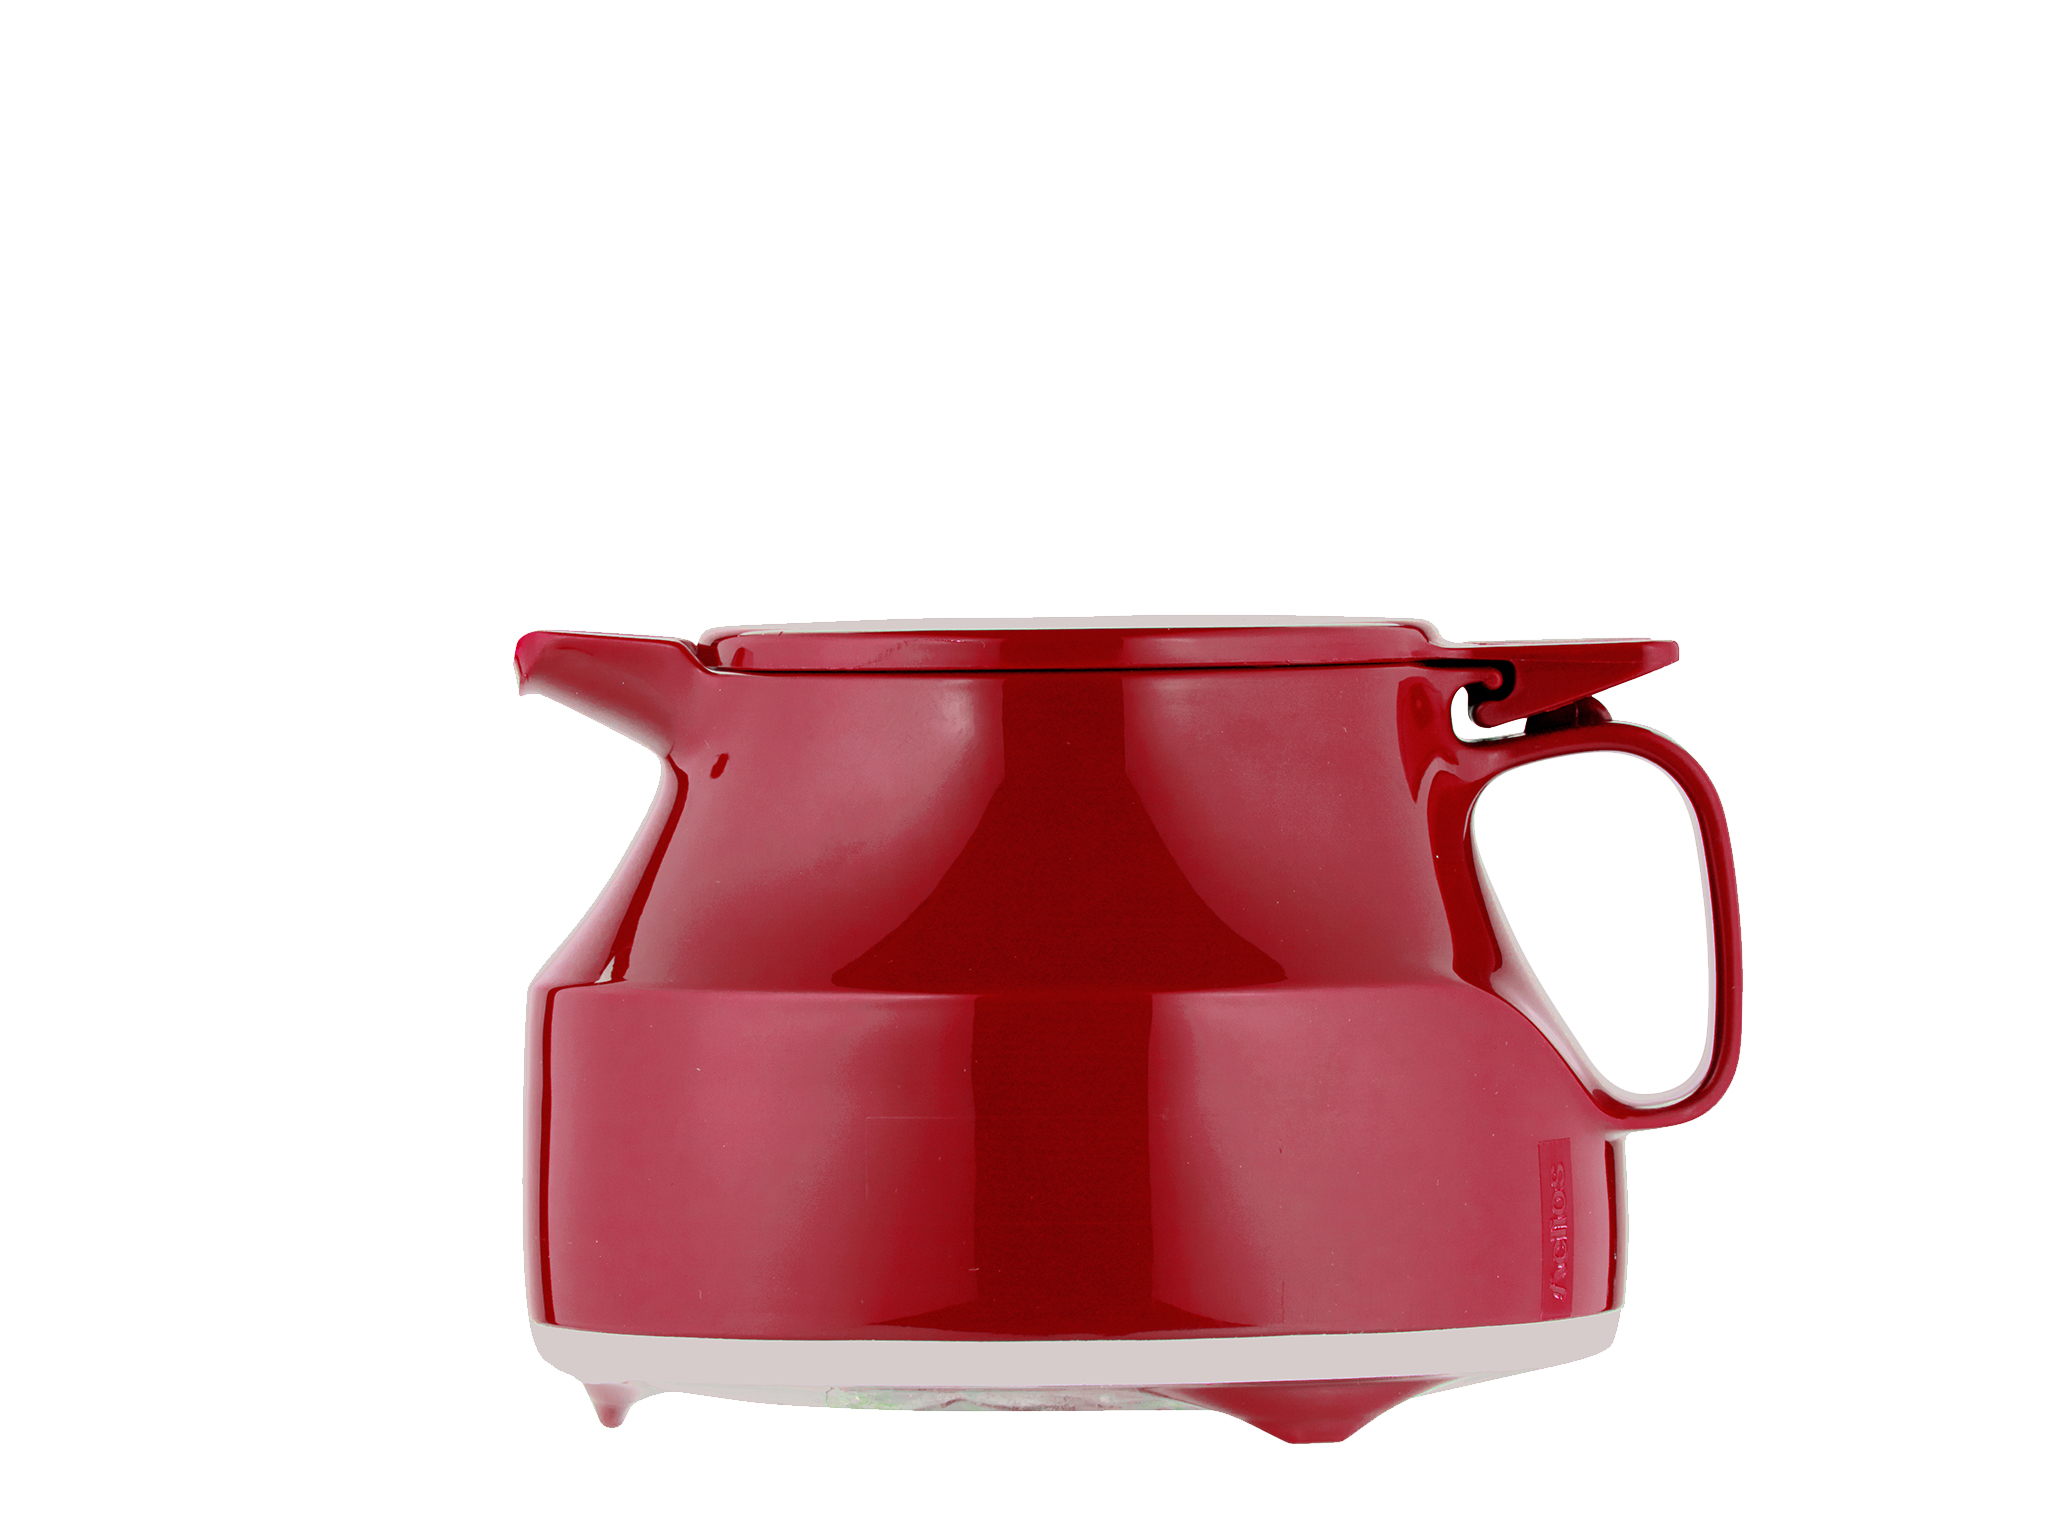 0141-046 - Insulated carafe red 0.30 L ROOM PRO - Helios